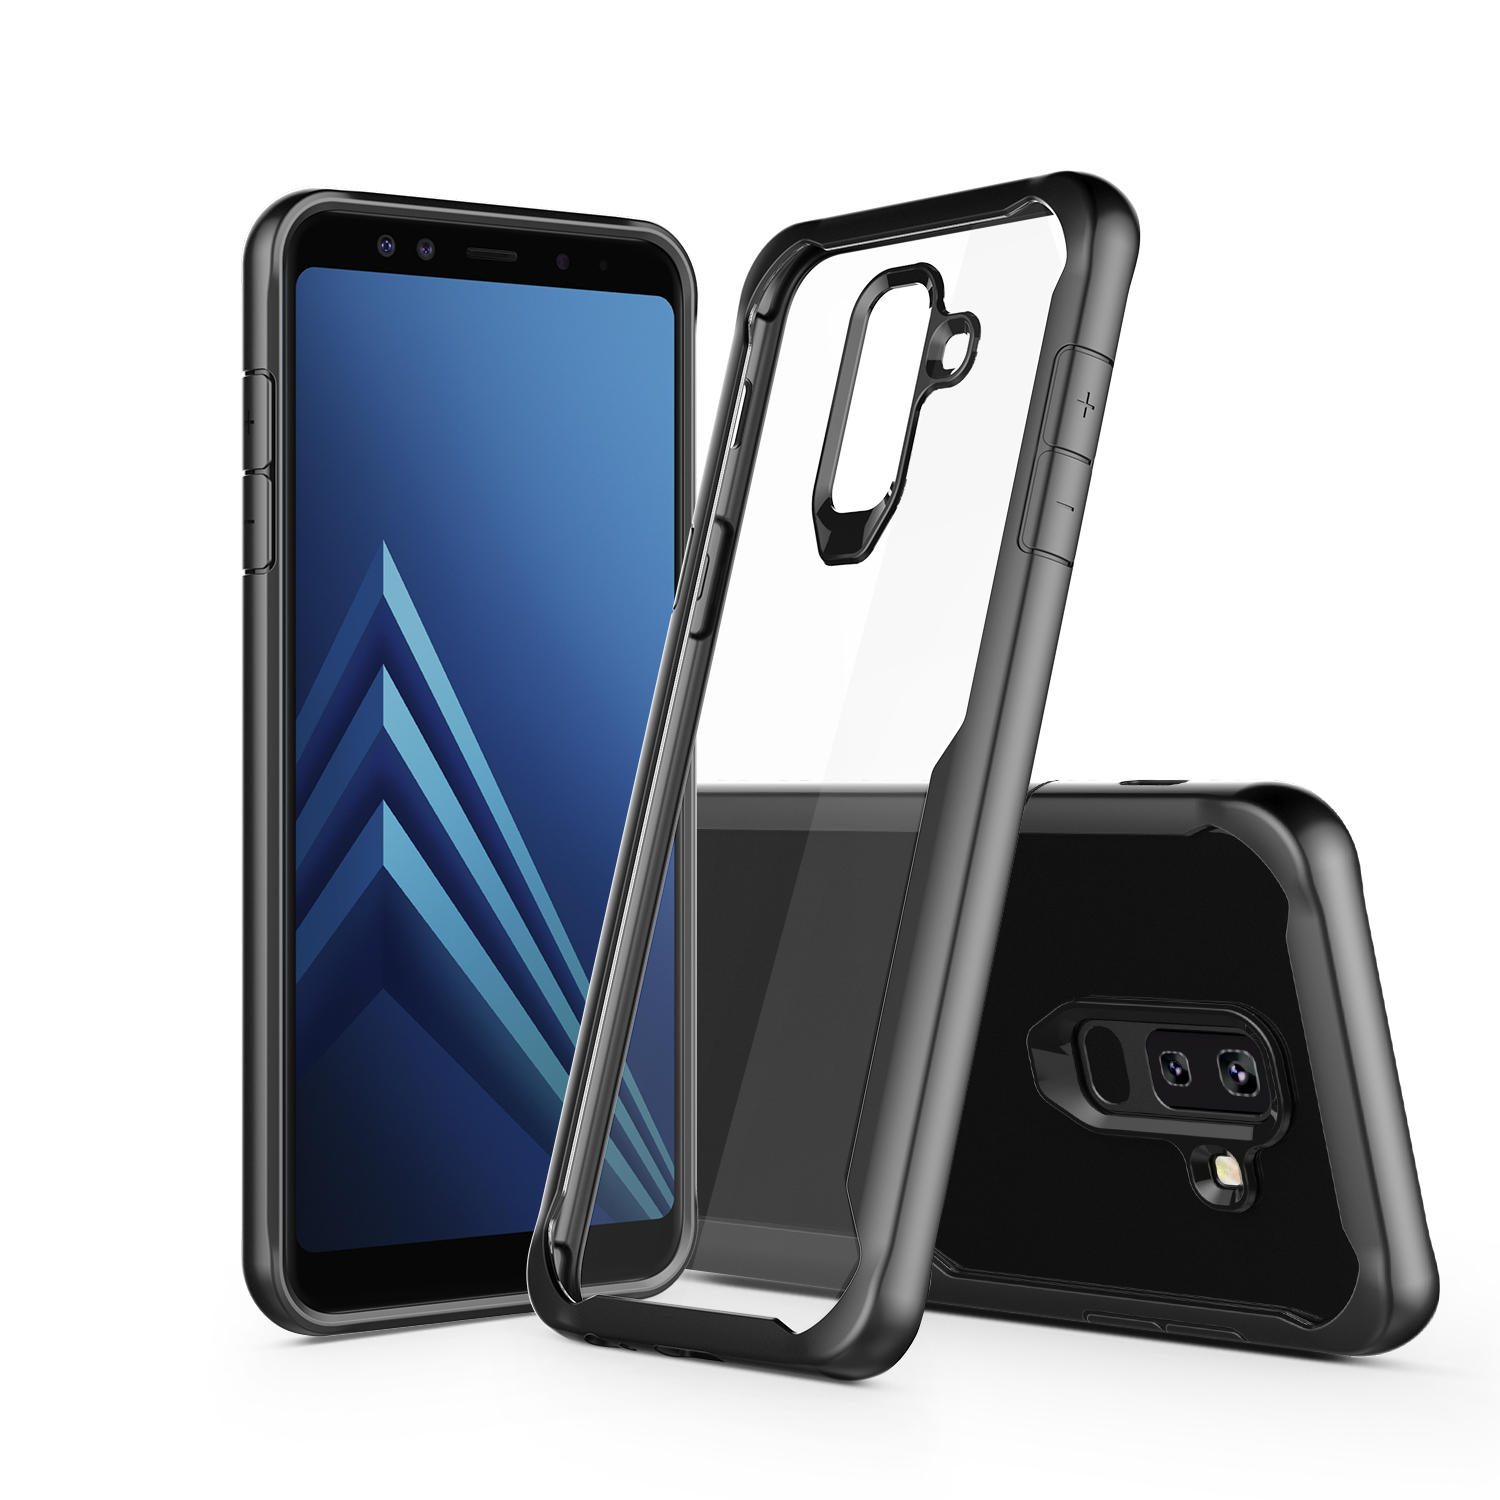 newest 795e9 89233 Bakeey Airbag Acrylic Clear TPU Protective Case for Samsung Galaxy A6/A6  Plus 2018